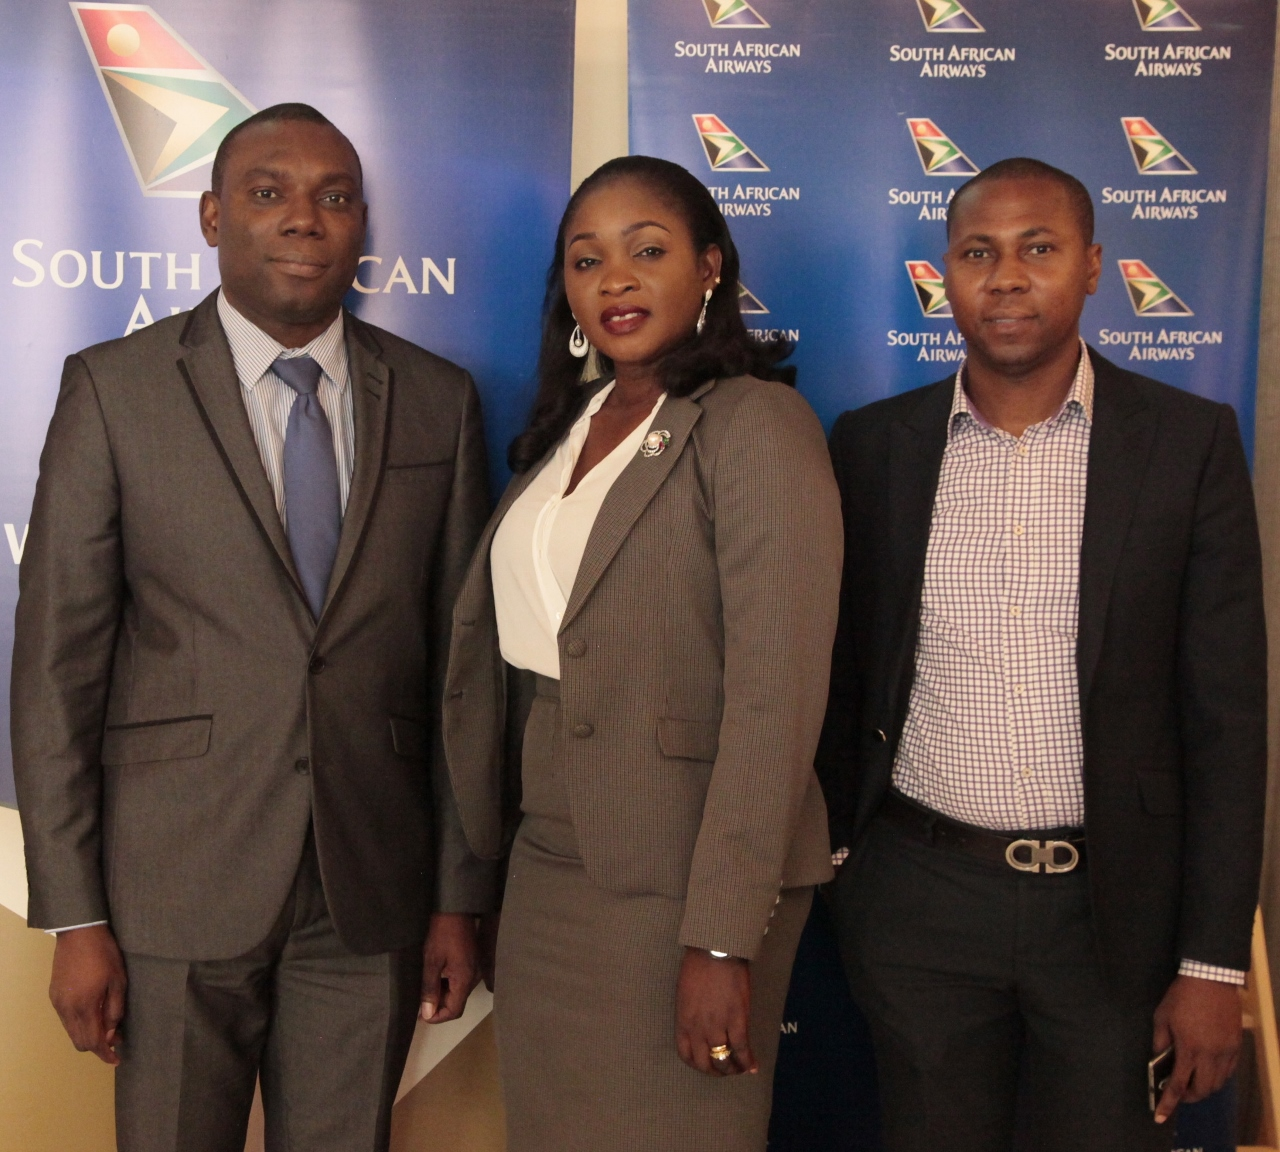 : Ohis Ehimiaghe, Regional Manager, North, West & Central Africa; Kemi Leke-Bamtefa, Head, Sales & Marketing and Jimi Ayodabo, Sales Executive all of South African Airways during the media lunch announcing SAA new A330-300 aircraft on the Lagos-Johannesburg route.